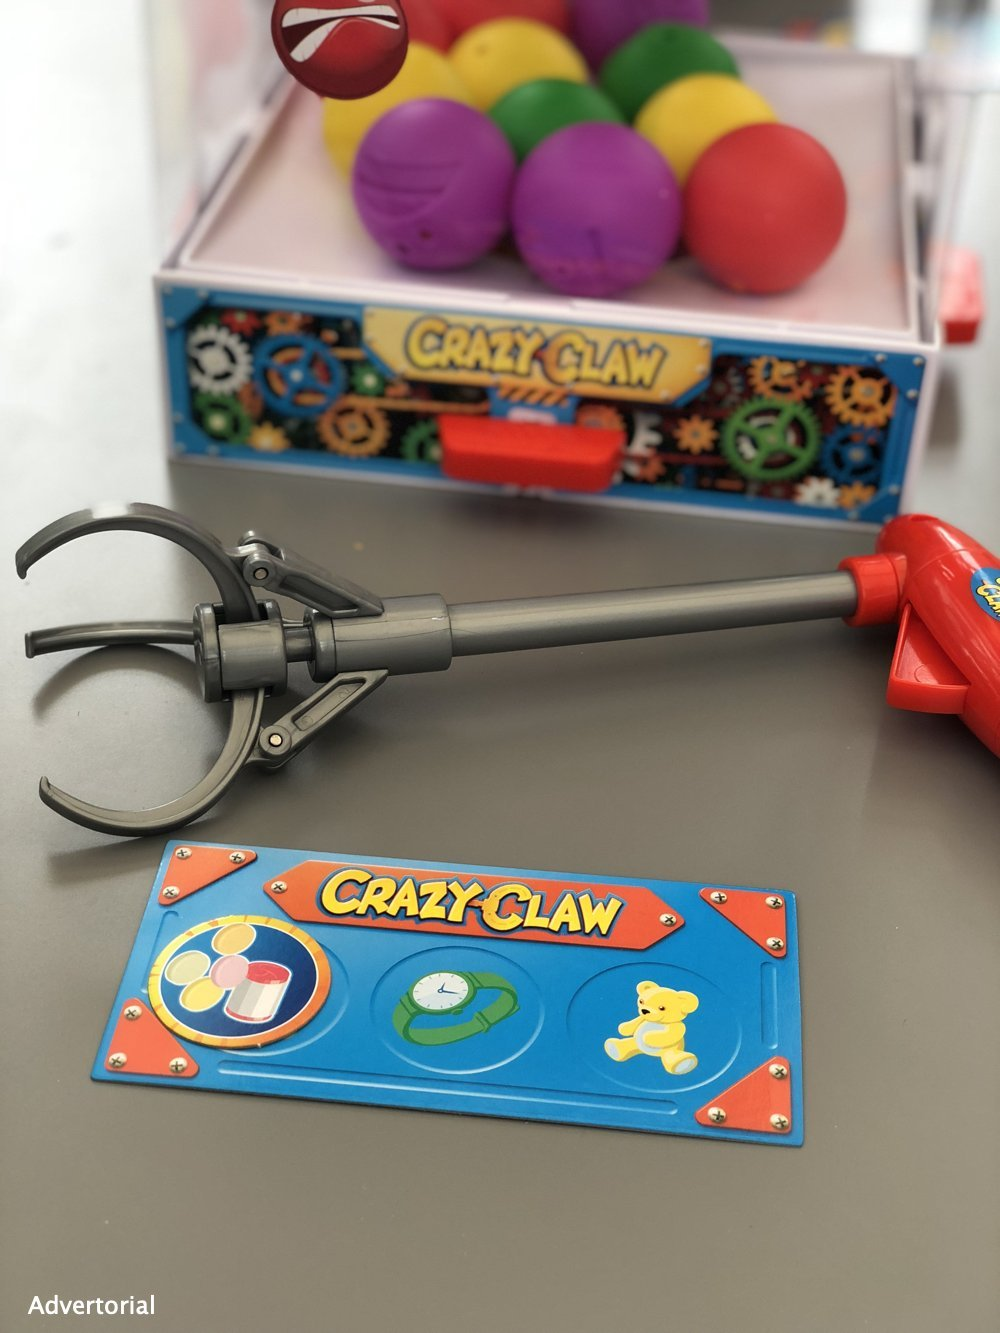 Crazy Claw game set up ready to play with claw and game card in front of the box of balls